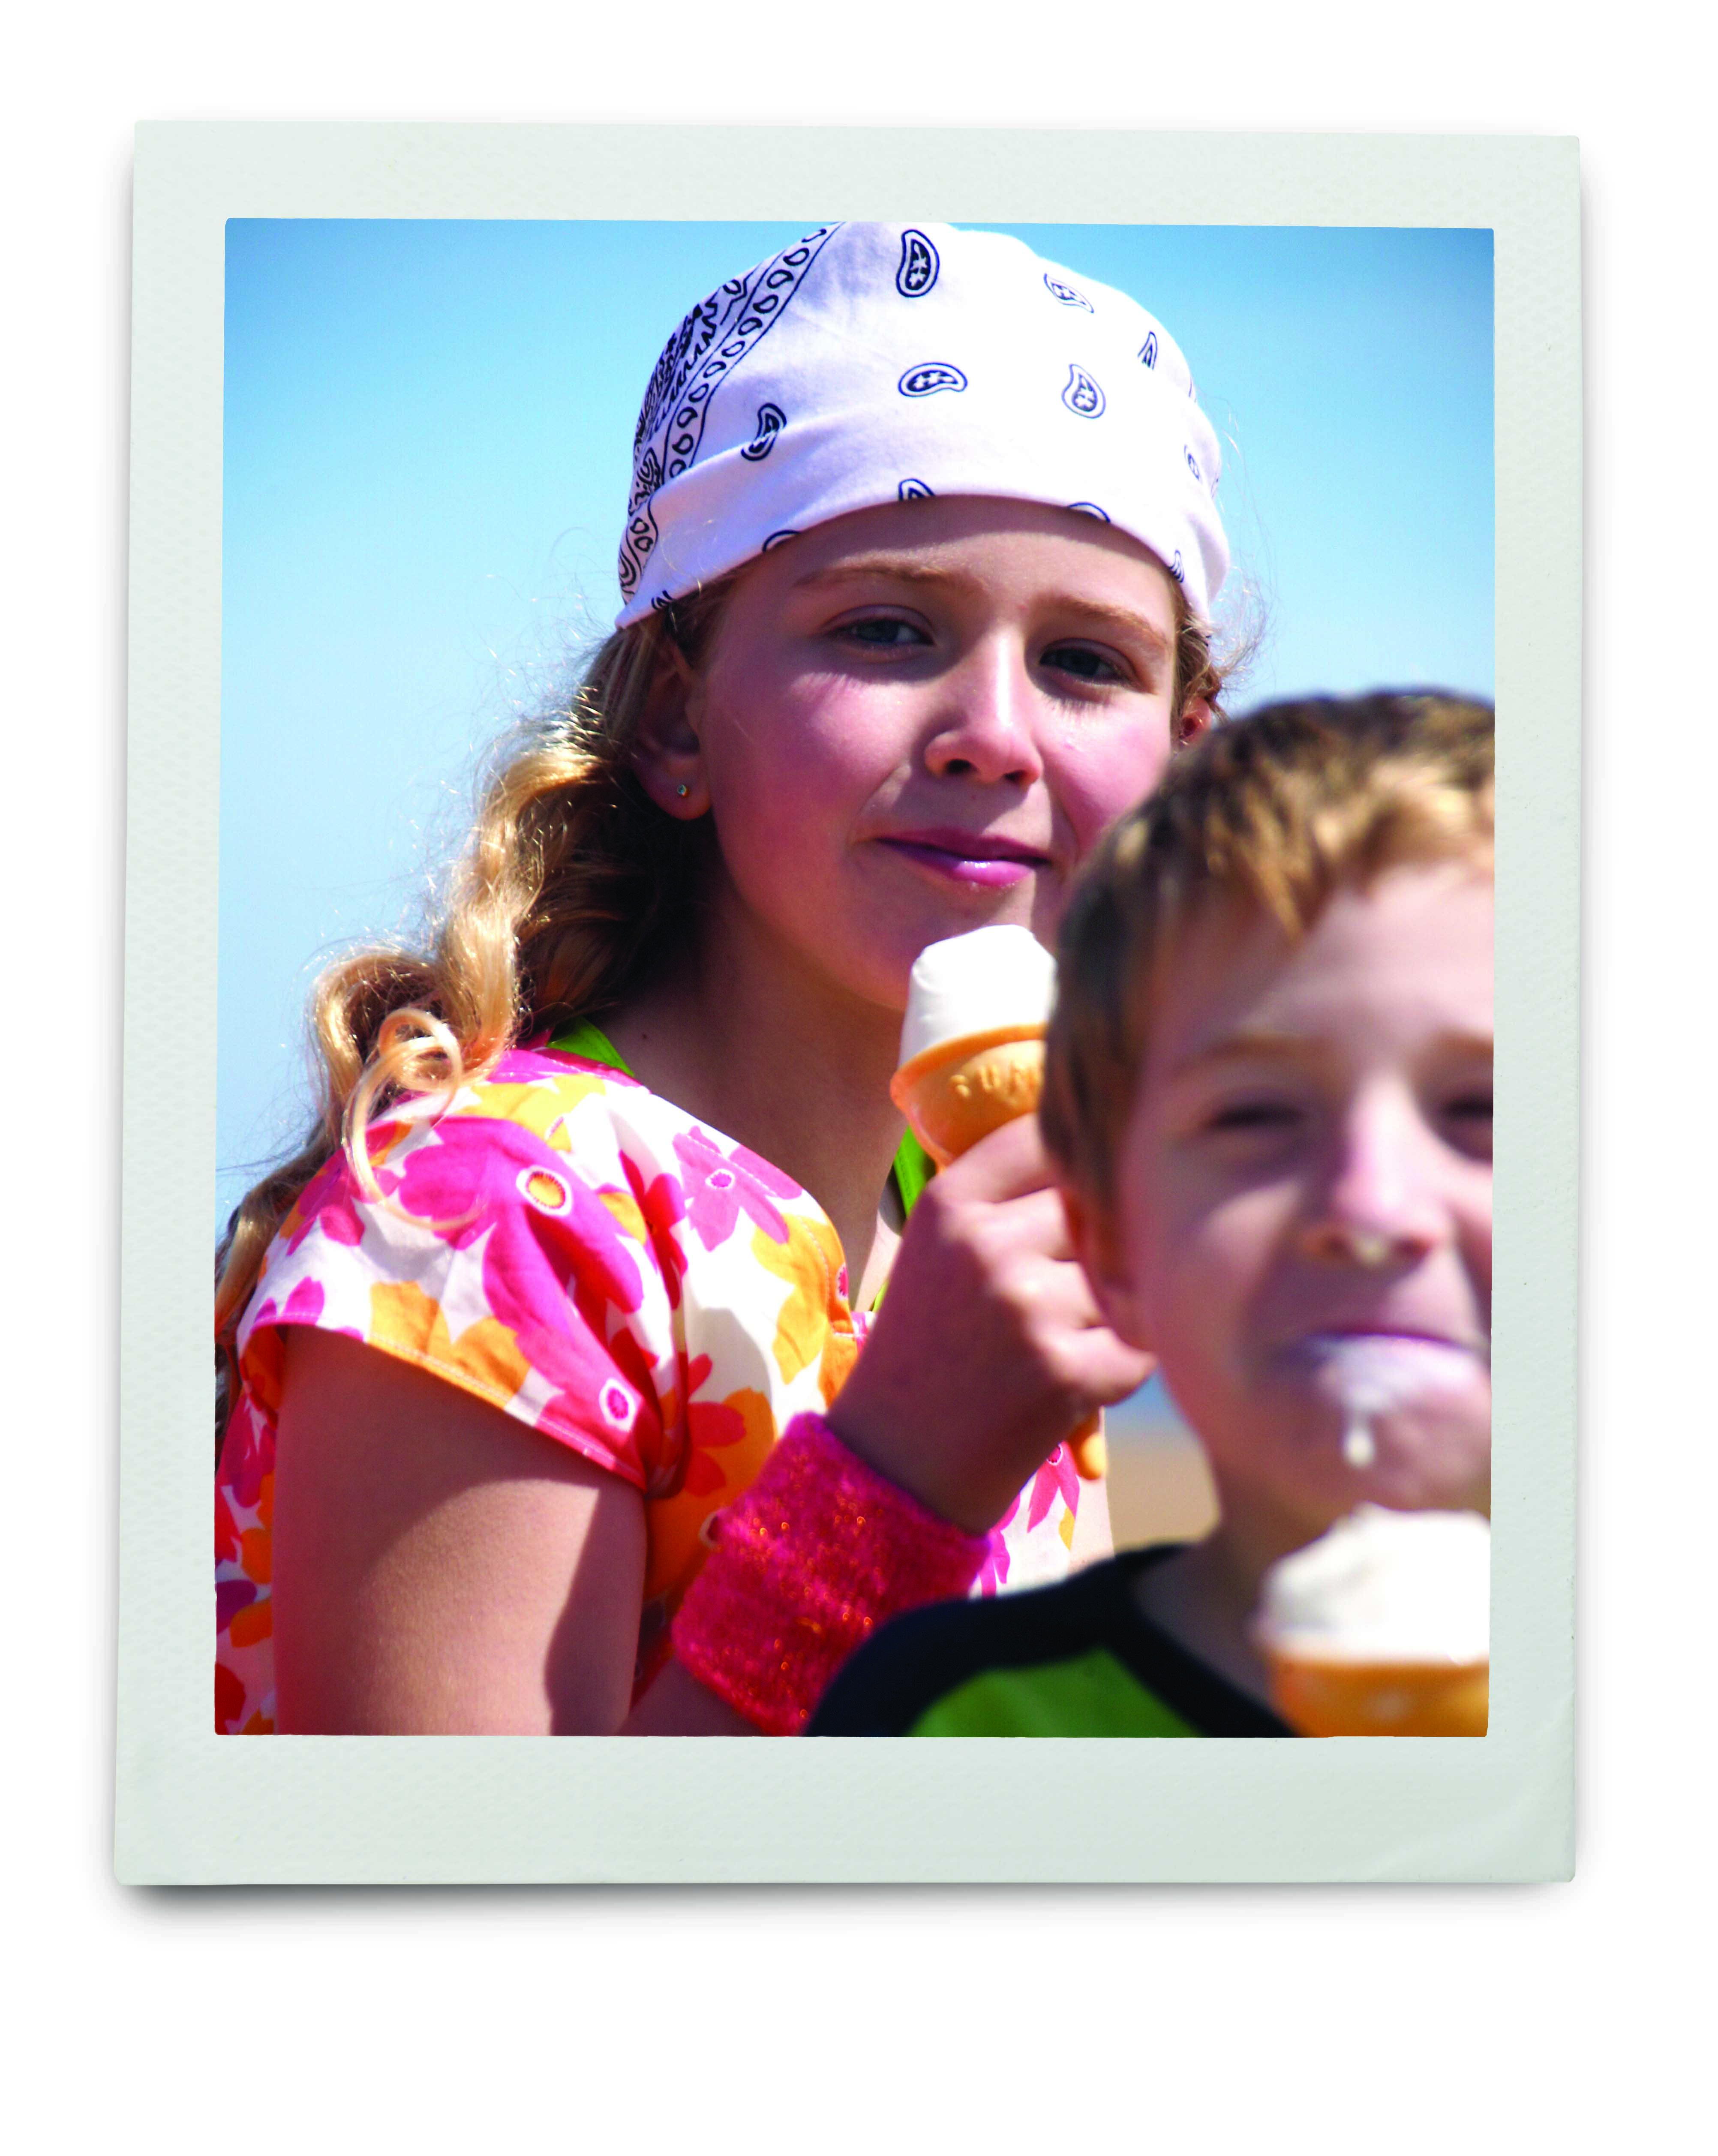 An image of a young girl and boy eating ice cream